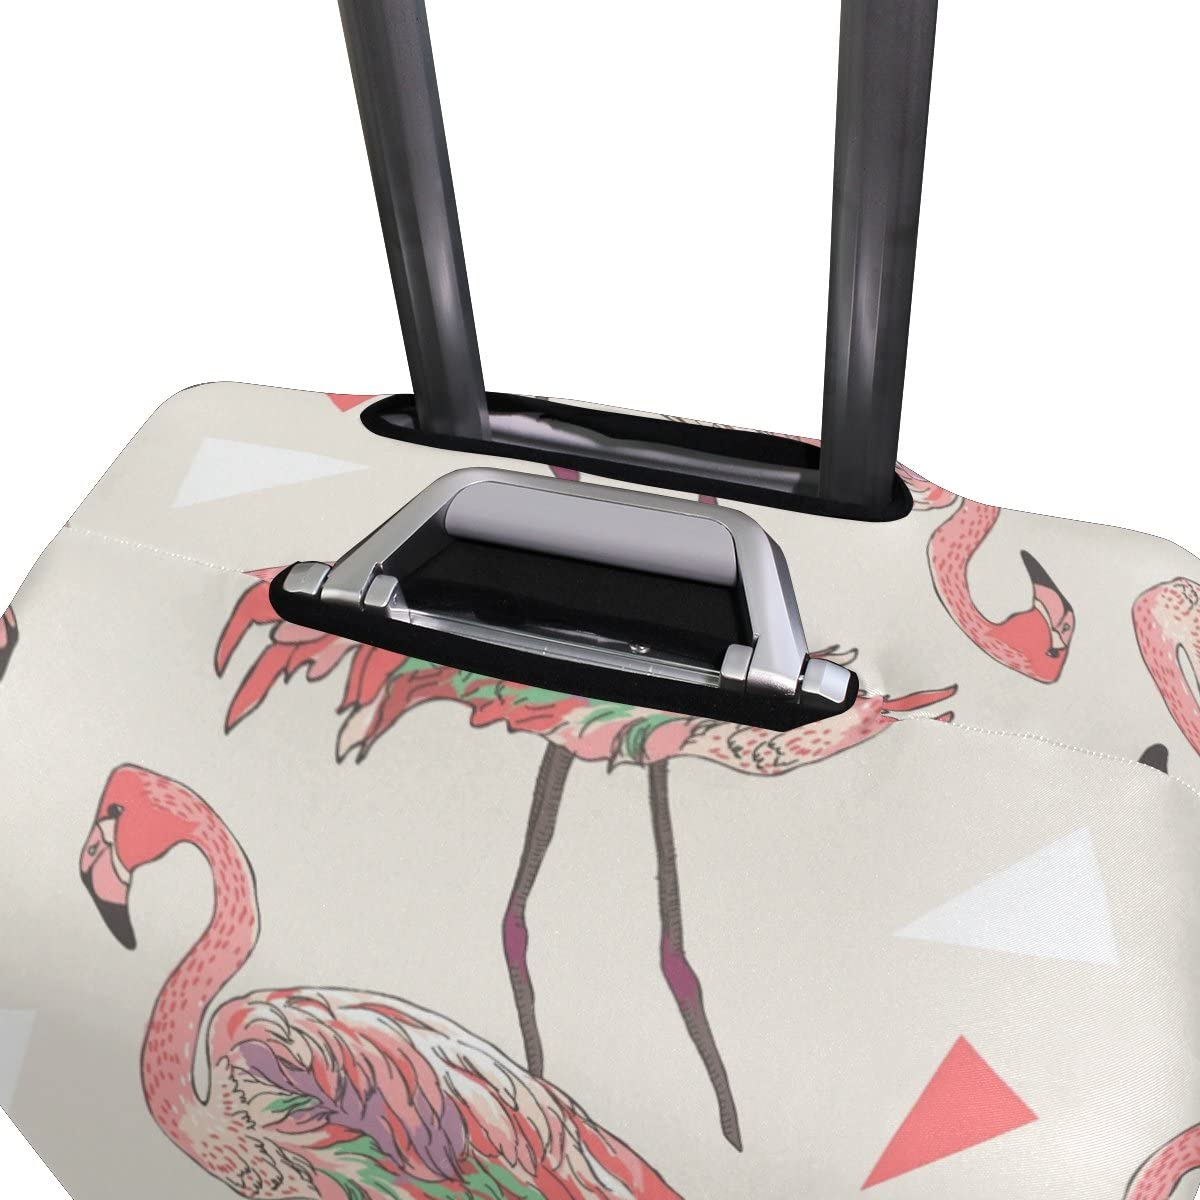 OREZI Luggage Protector Flamingo Illustration Travel Luggage Elastic Cover Suitcase Washable and Durable Anti-Scratch Stretchy Case Cover Fits 18-32 Inches